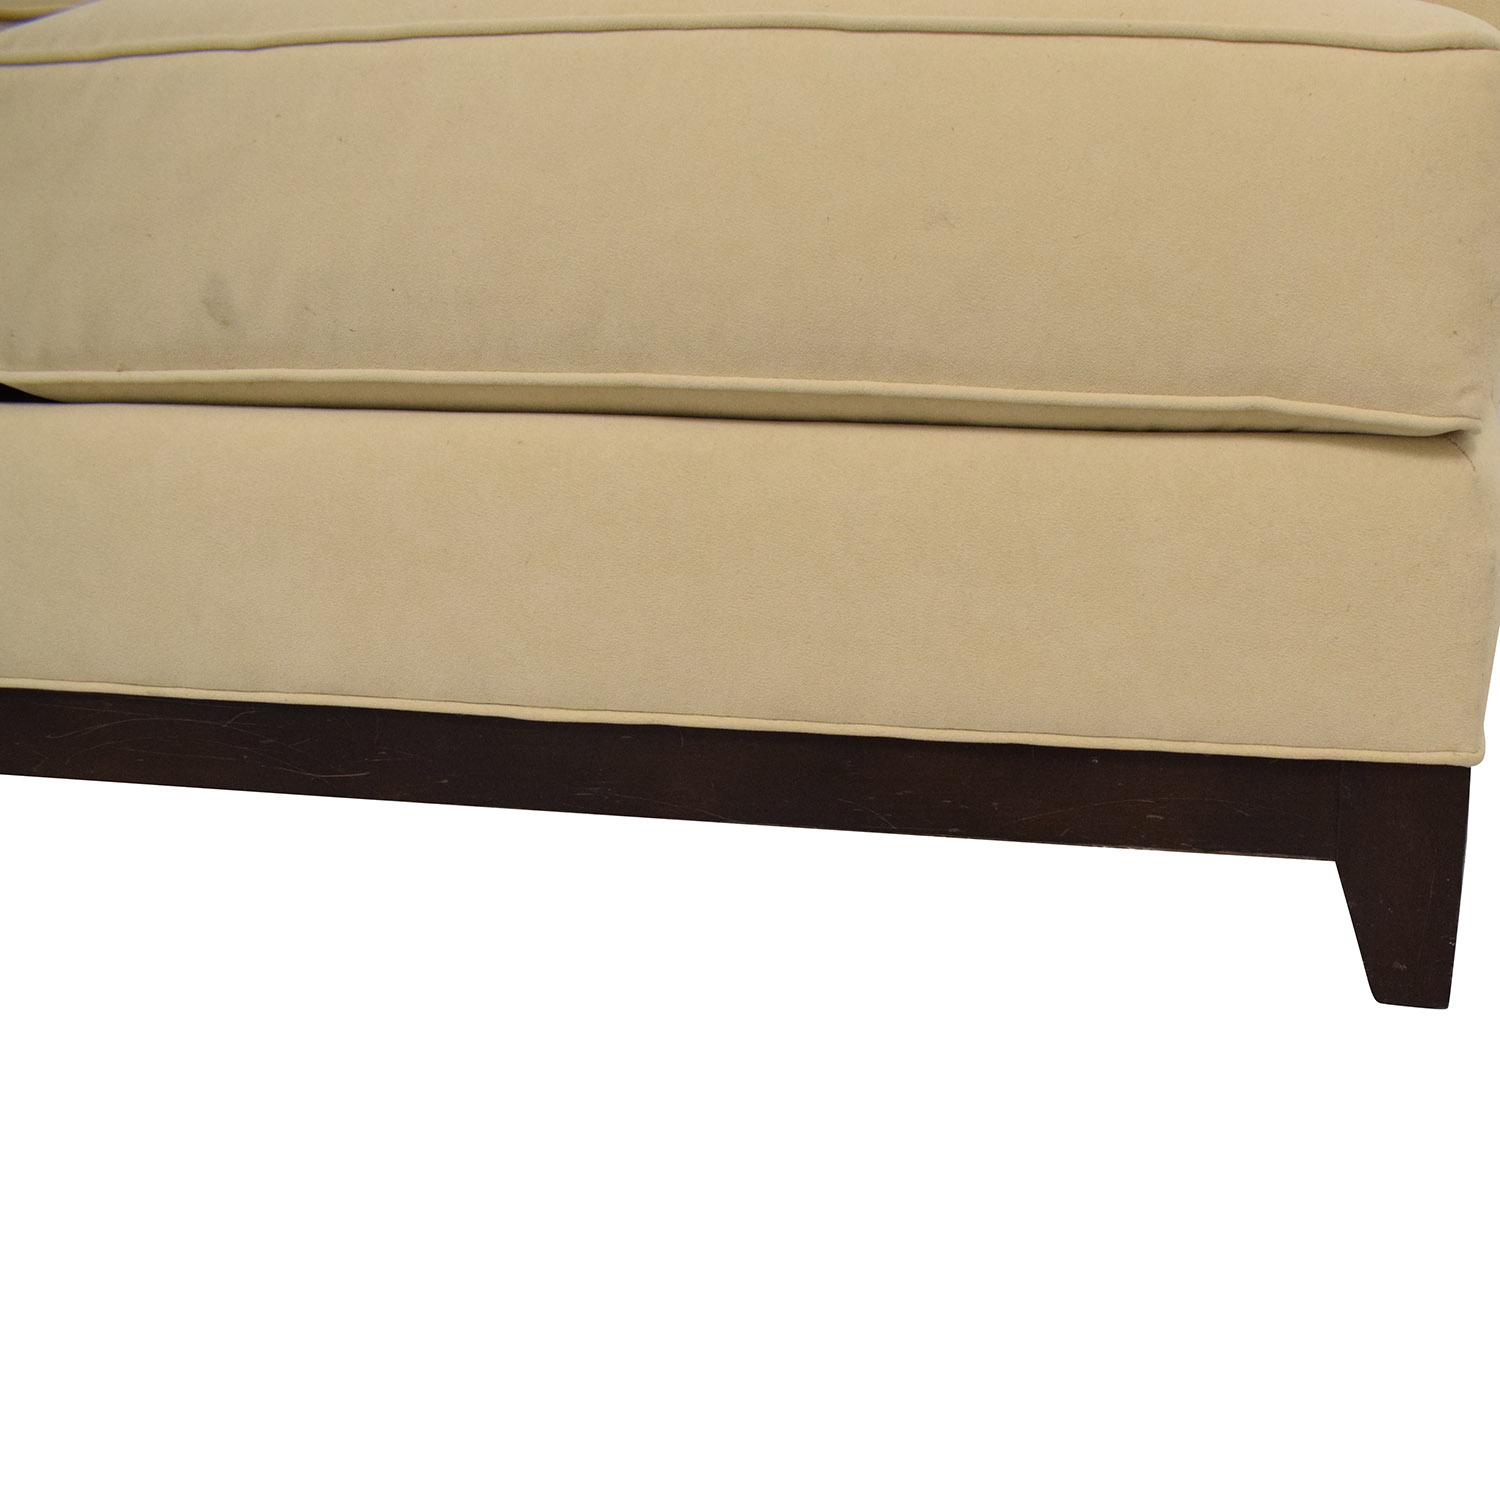 Ethan Allen Ethan Allen Three Cushion Sofa beige